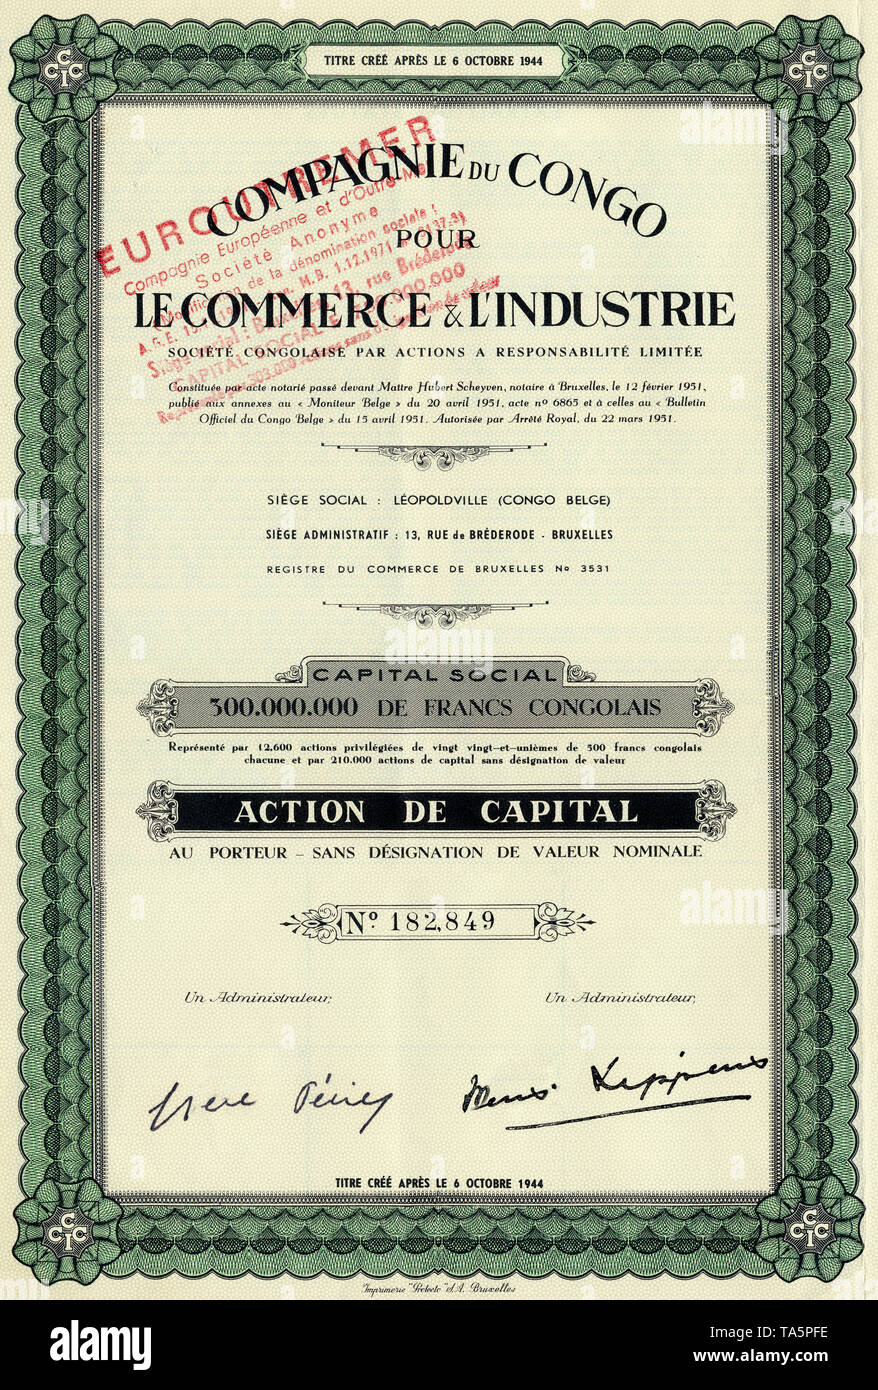 Historic colonial share certificate, trade and industry, 1944, Brussels, Belgium, Europe, Compagnie du Congo pour le Commerce and l'Industrie Societe Congolaise, Leopoldville, now Kinshasa, Belgian Congo, now Republic of Congo, Africa, Historisches Wertpapier, Kolonial-Aktie, Handel und Industrie, 1944 , Brüssel, Belgien, Europa, Compagnie du Congo pour le Commerce & l'Industrie Societe Congolaise, Leopoldville, Belgisch-Kongo, heute Republik Kongo, Afrika - Stock Image